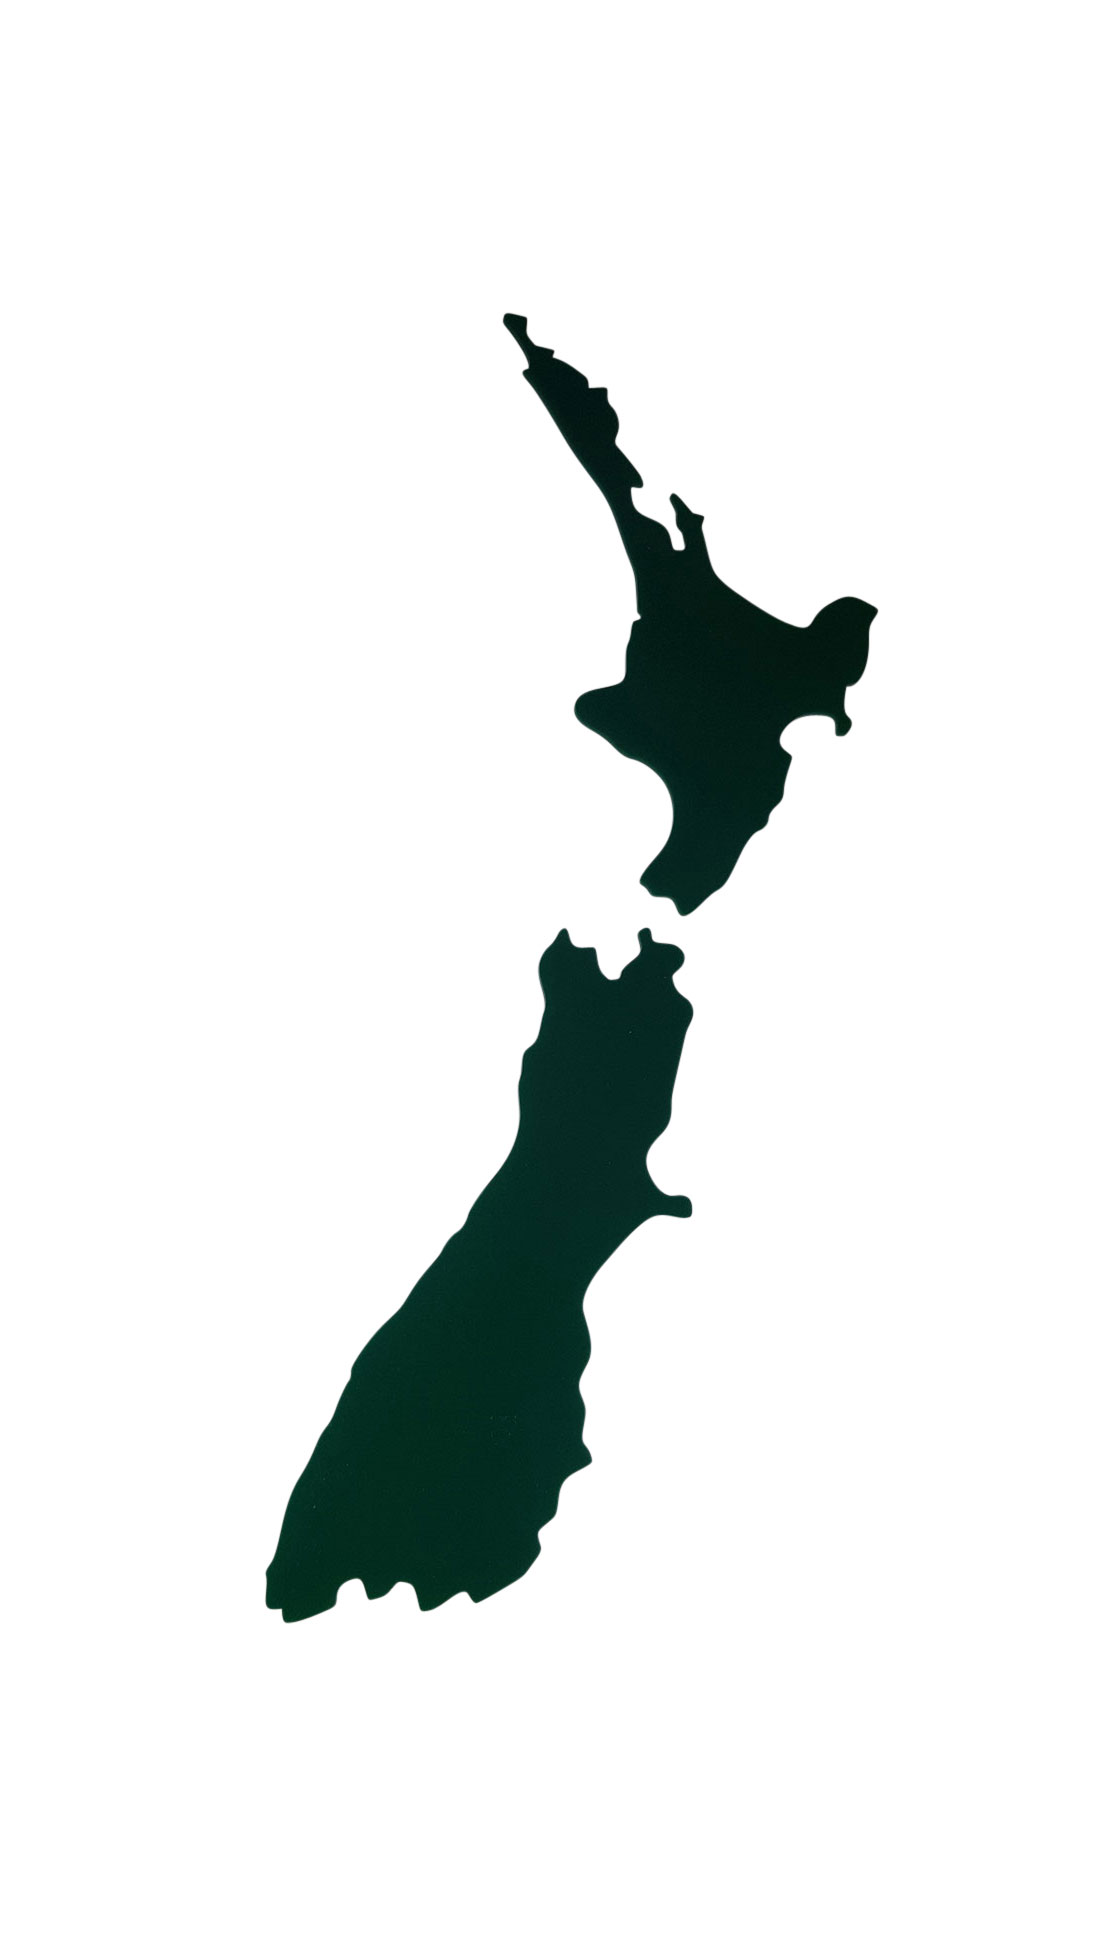 1100x1956 New Zealand Your Home Land